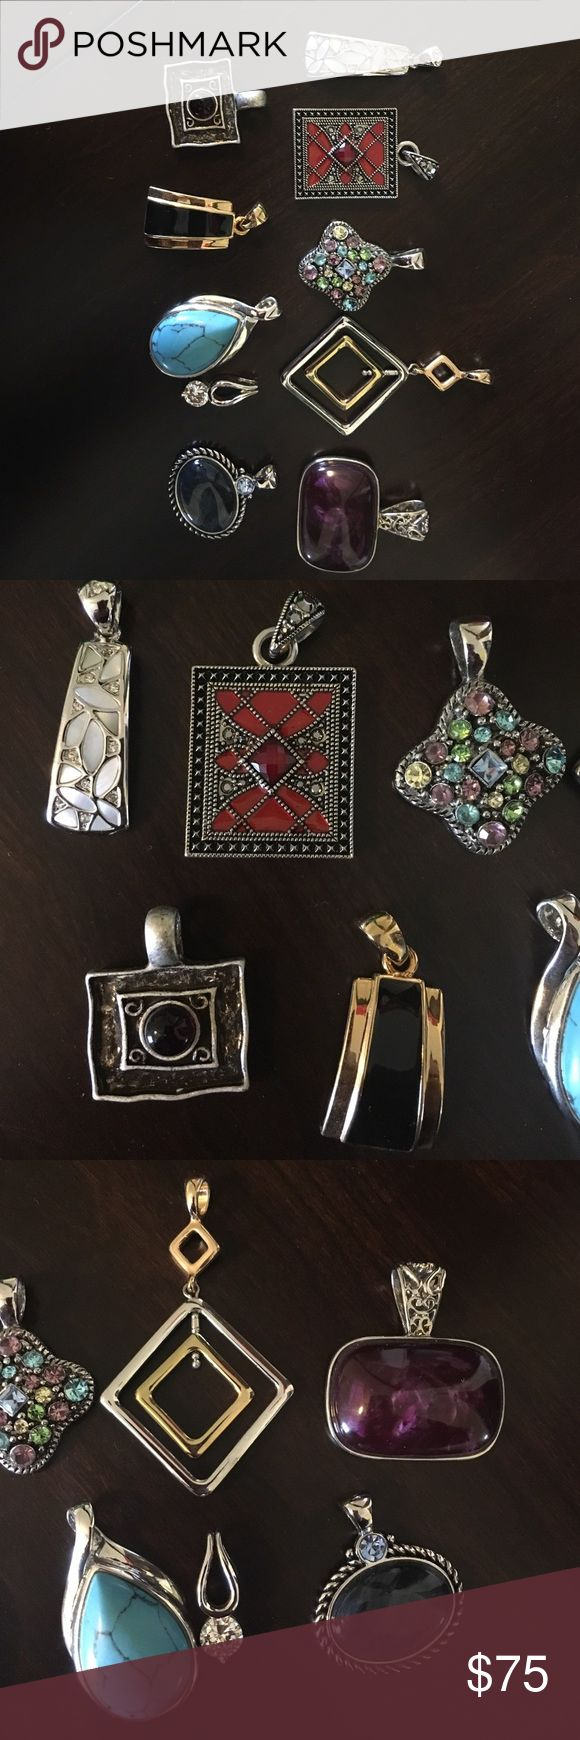 Lia Sophia Slide lot 10 slides. No boxes. Some NWOT others worn <5 timeS Lia Sophia Jewelry Necklaces